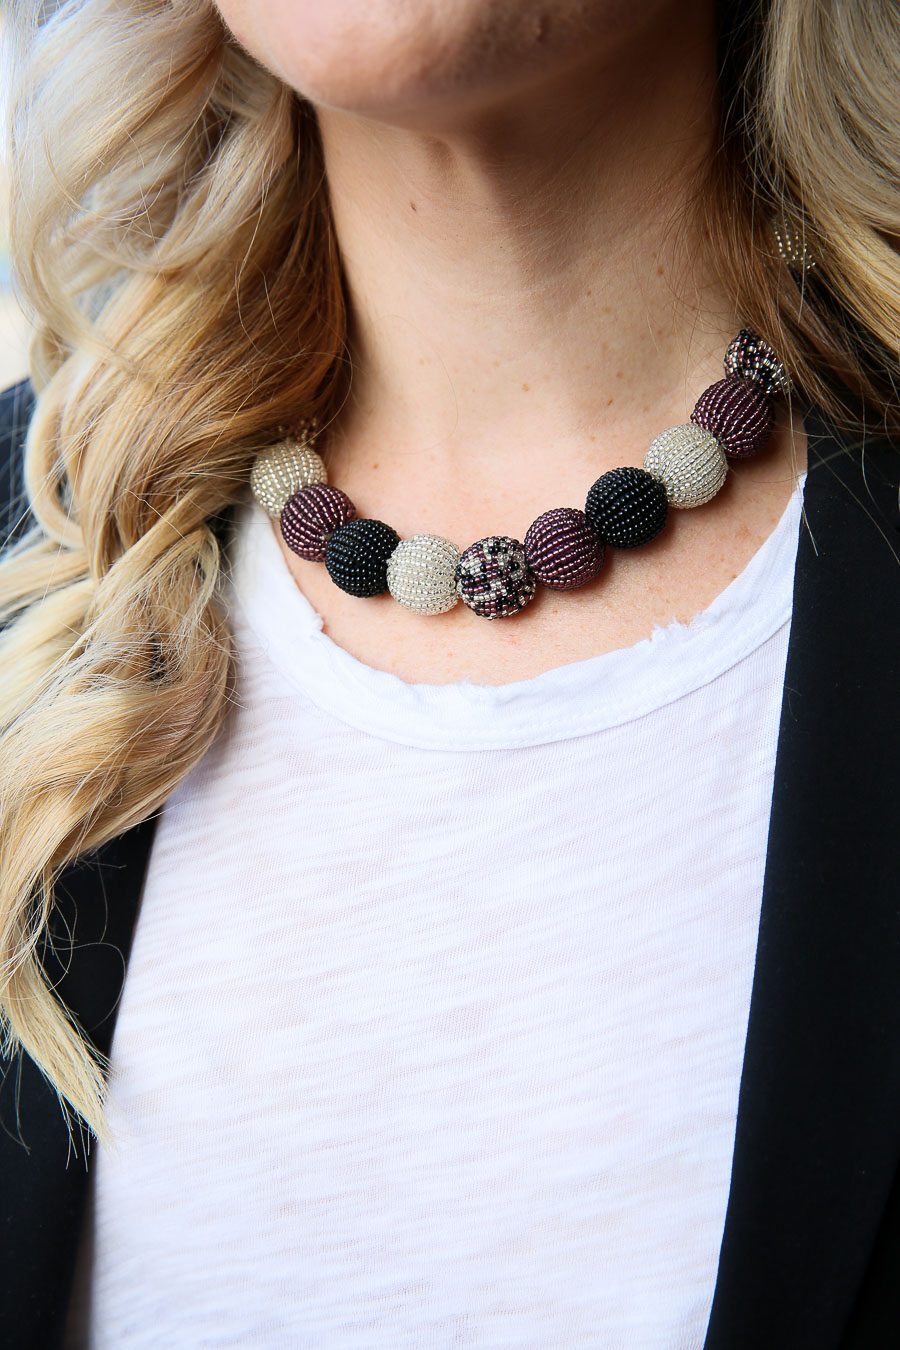 Ball Necklace. This purple, black, and multicolor necklace matches any outfit. How to Dress Up Boyfriend Jeans - Ripped Boyfriend Jeans. #accessories #jewelry #necklace #ootd